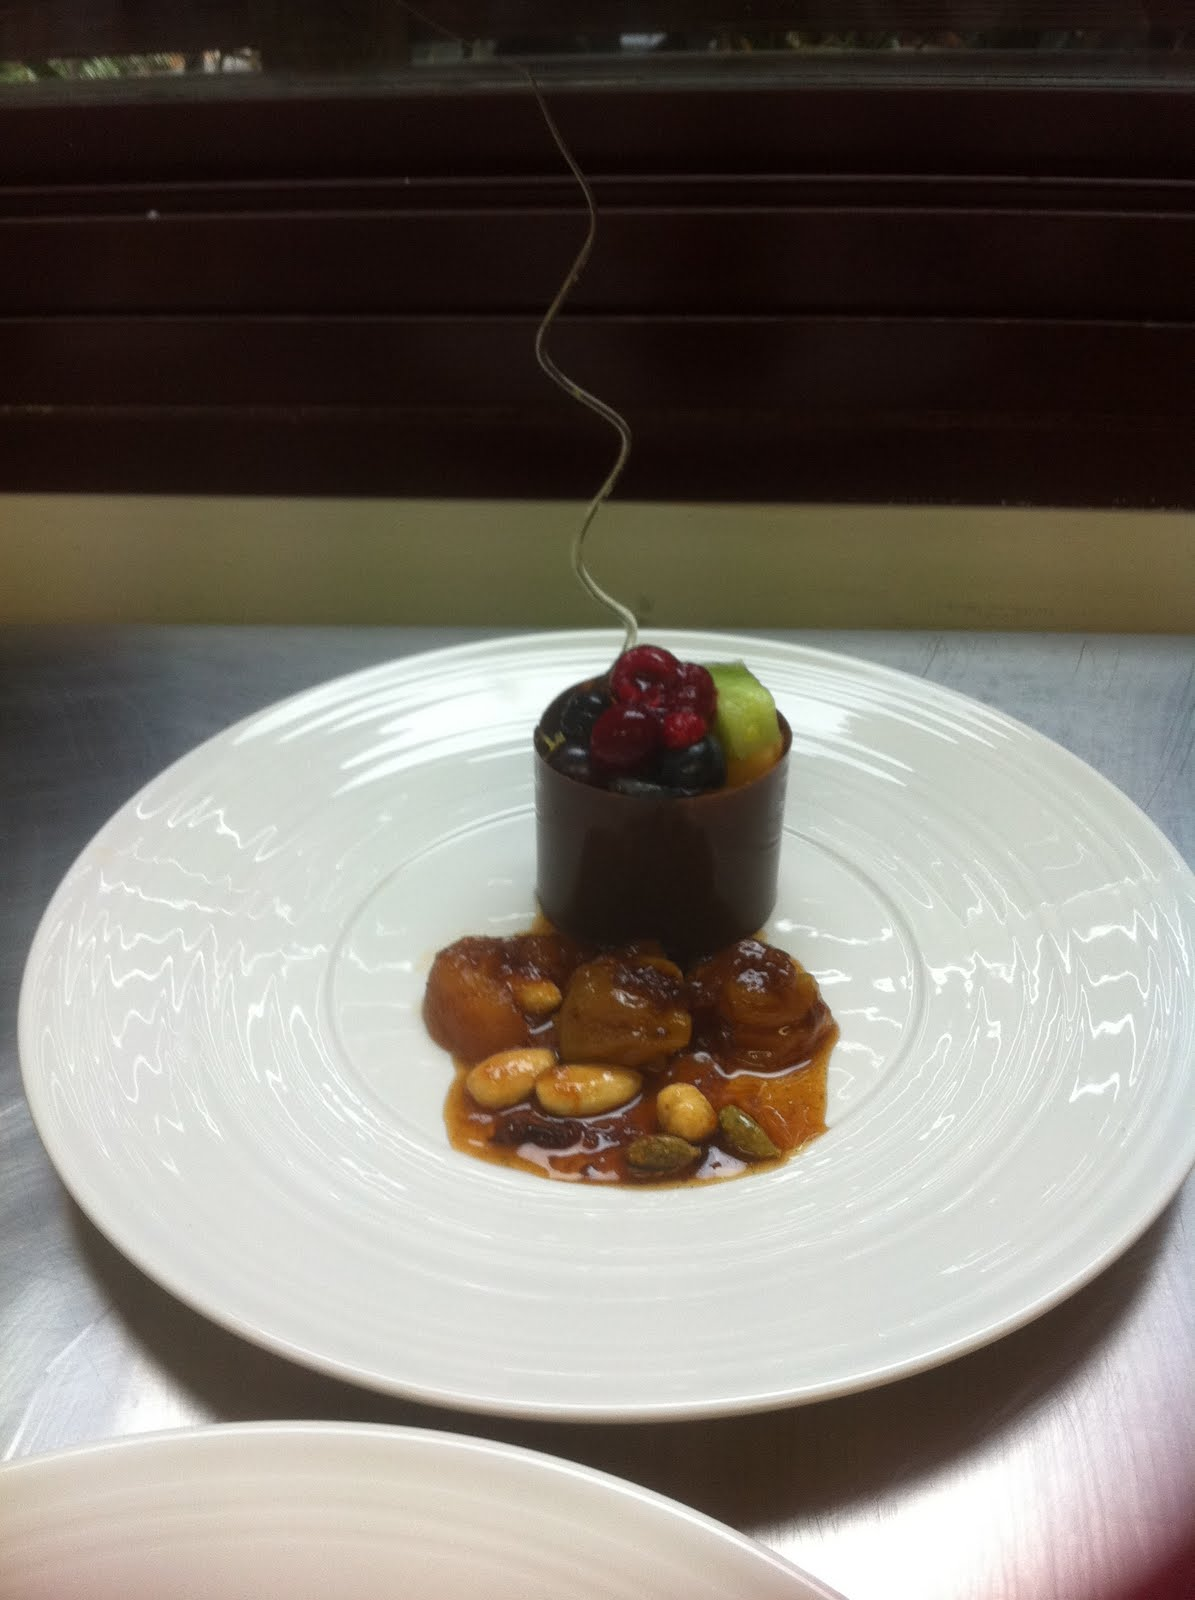 Home Engineering At Work Plating Up Dessert A New And